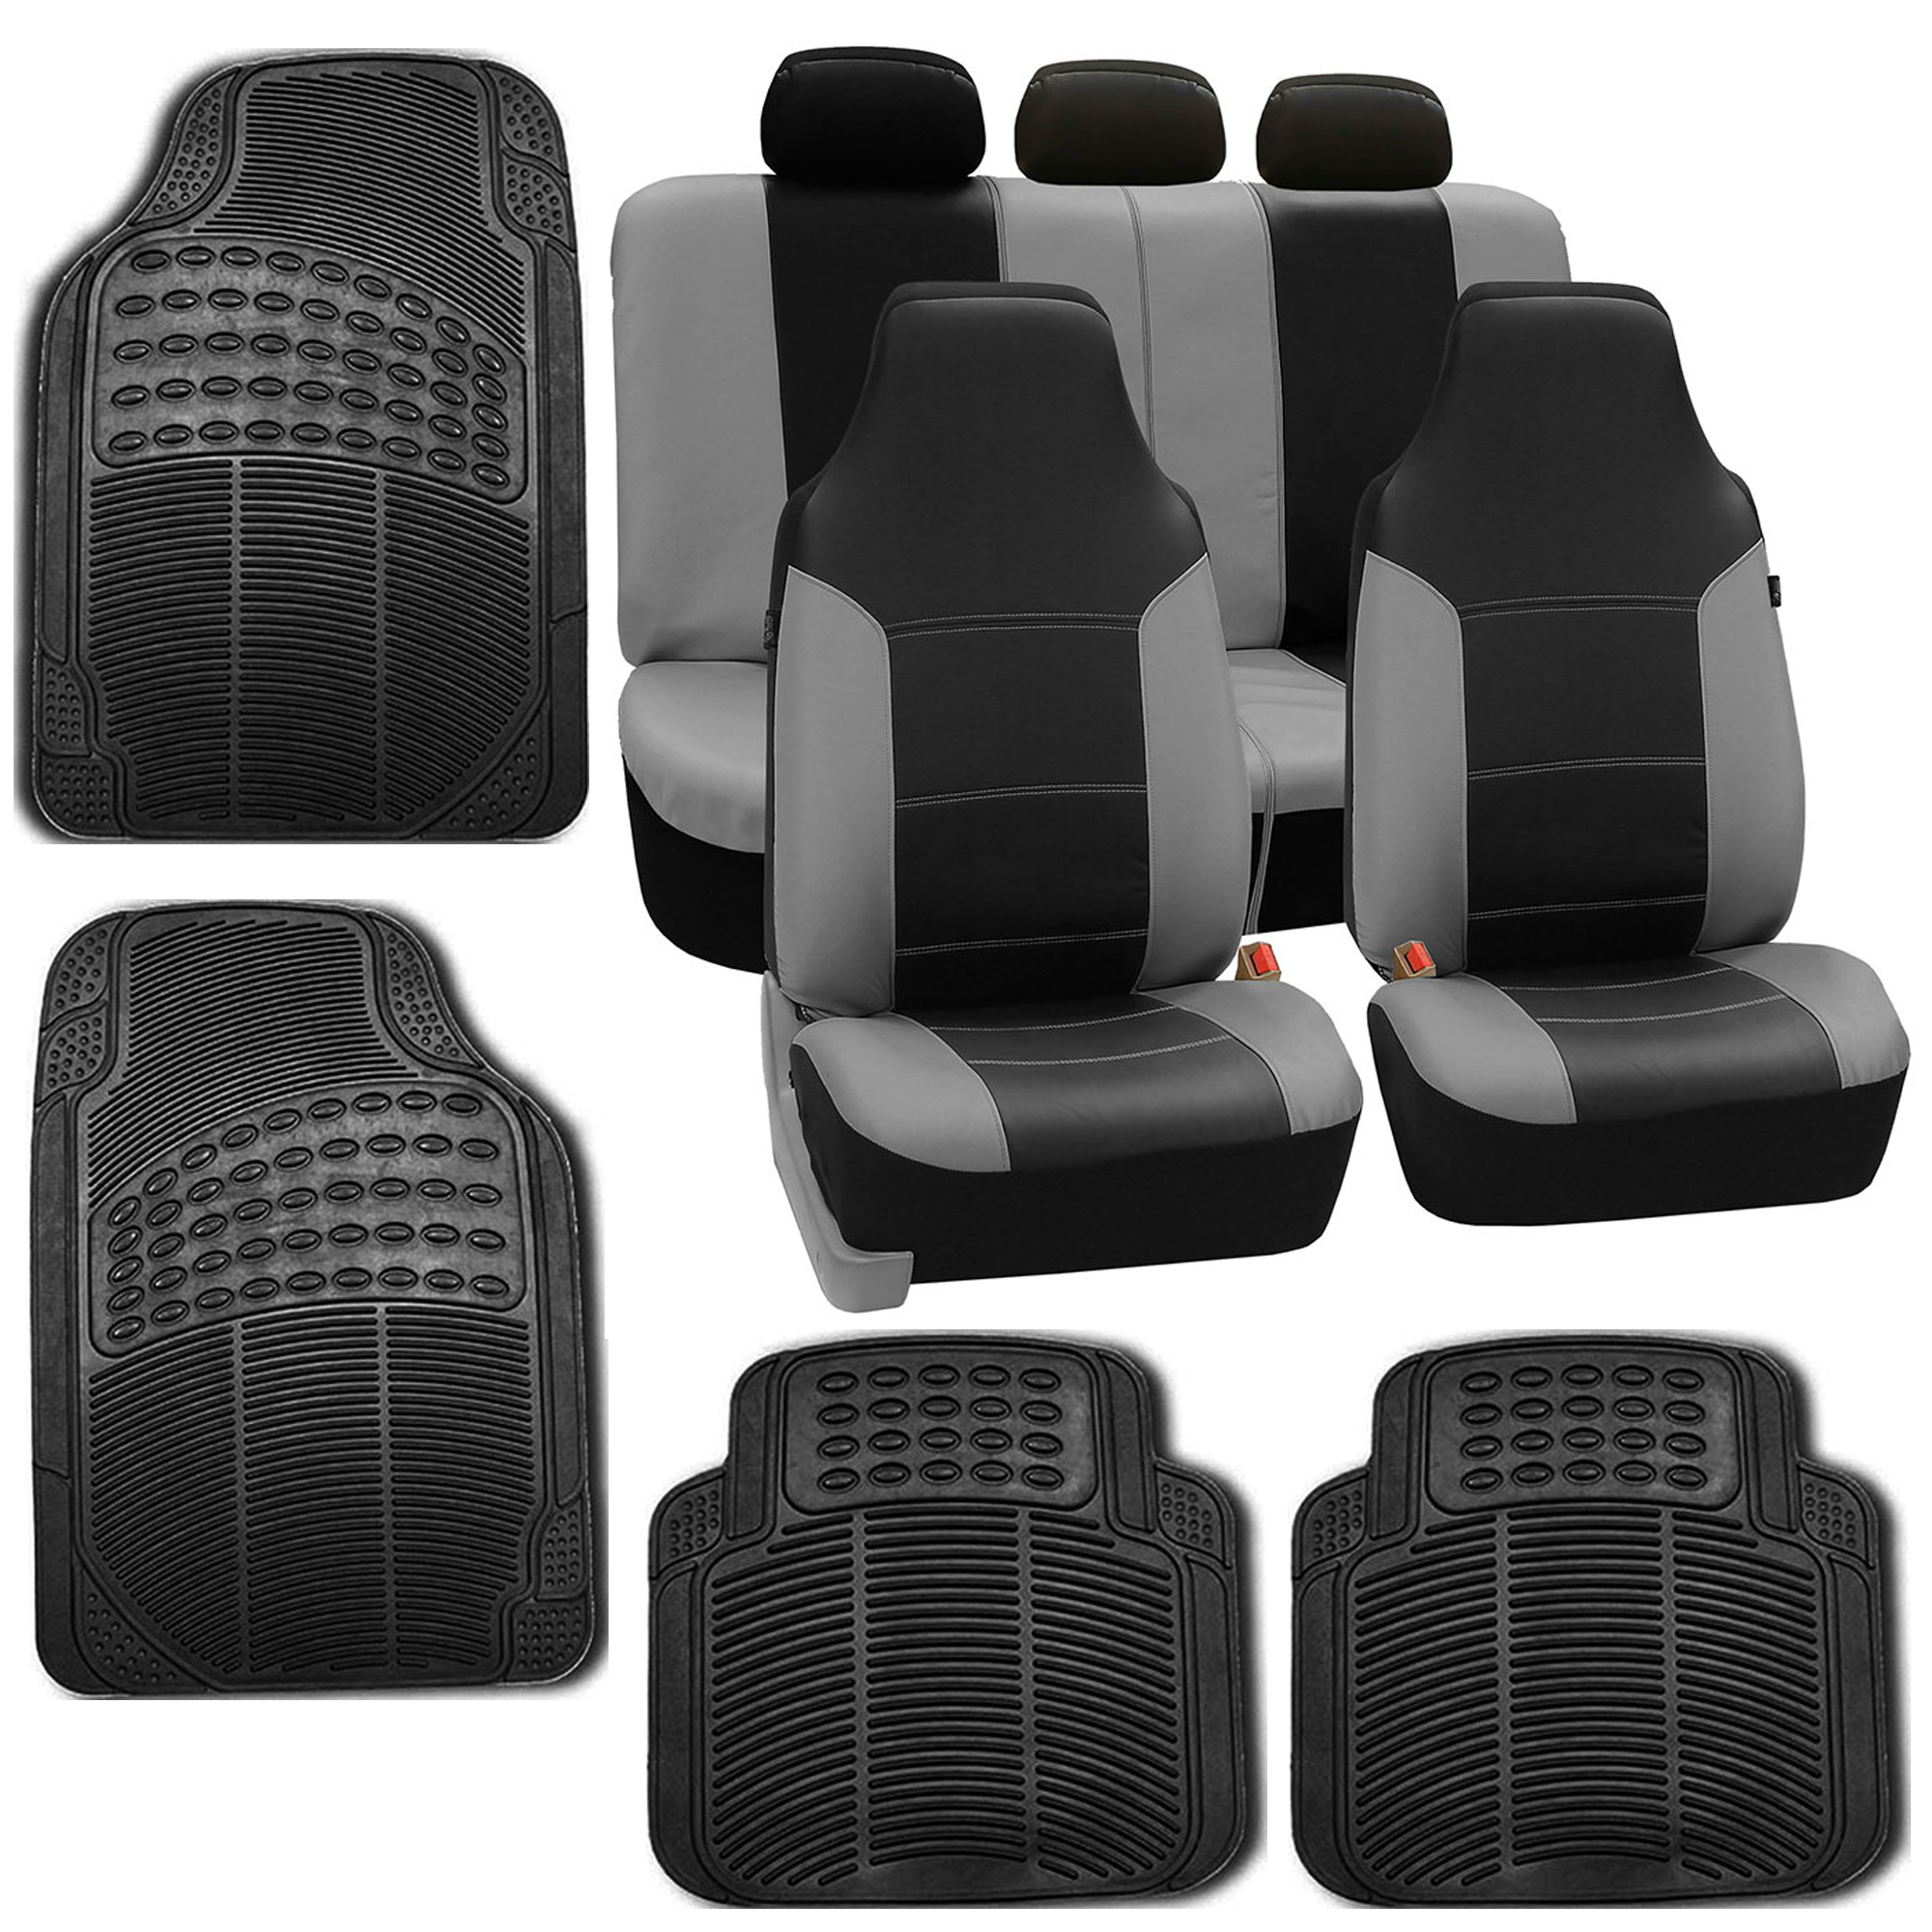 faux leather gray black car seat cover set headrests floor mat set. Black Bedroom Furniture Sets. Home Design Ideas